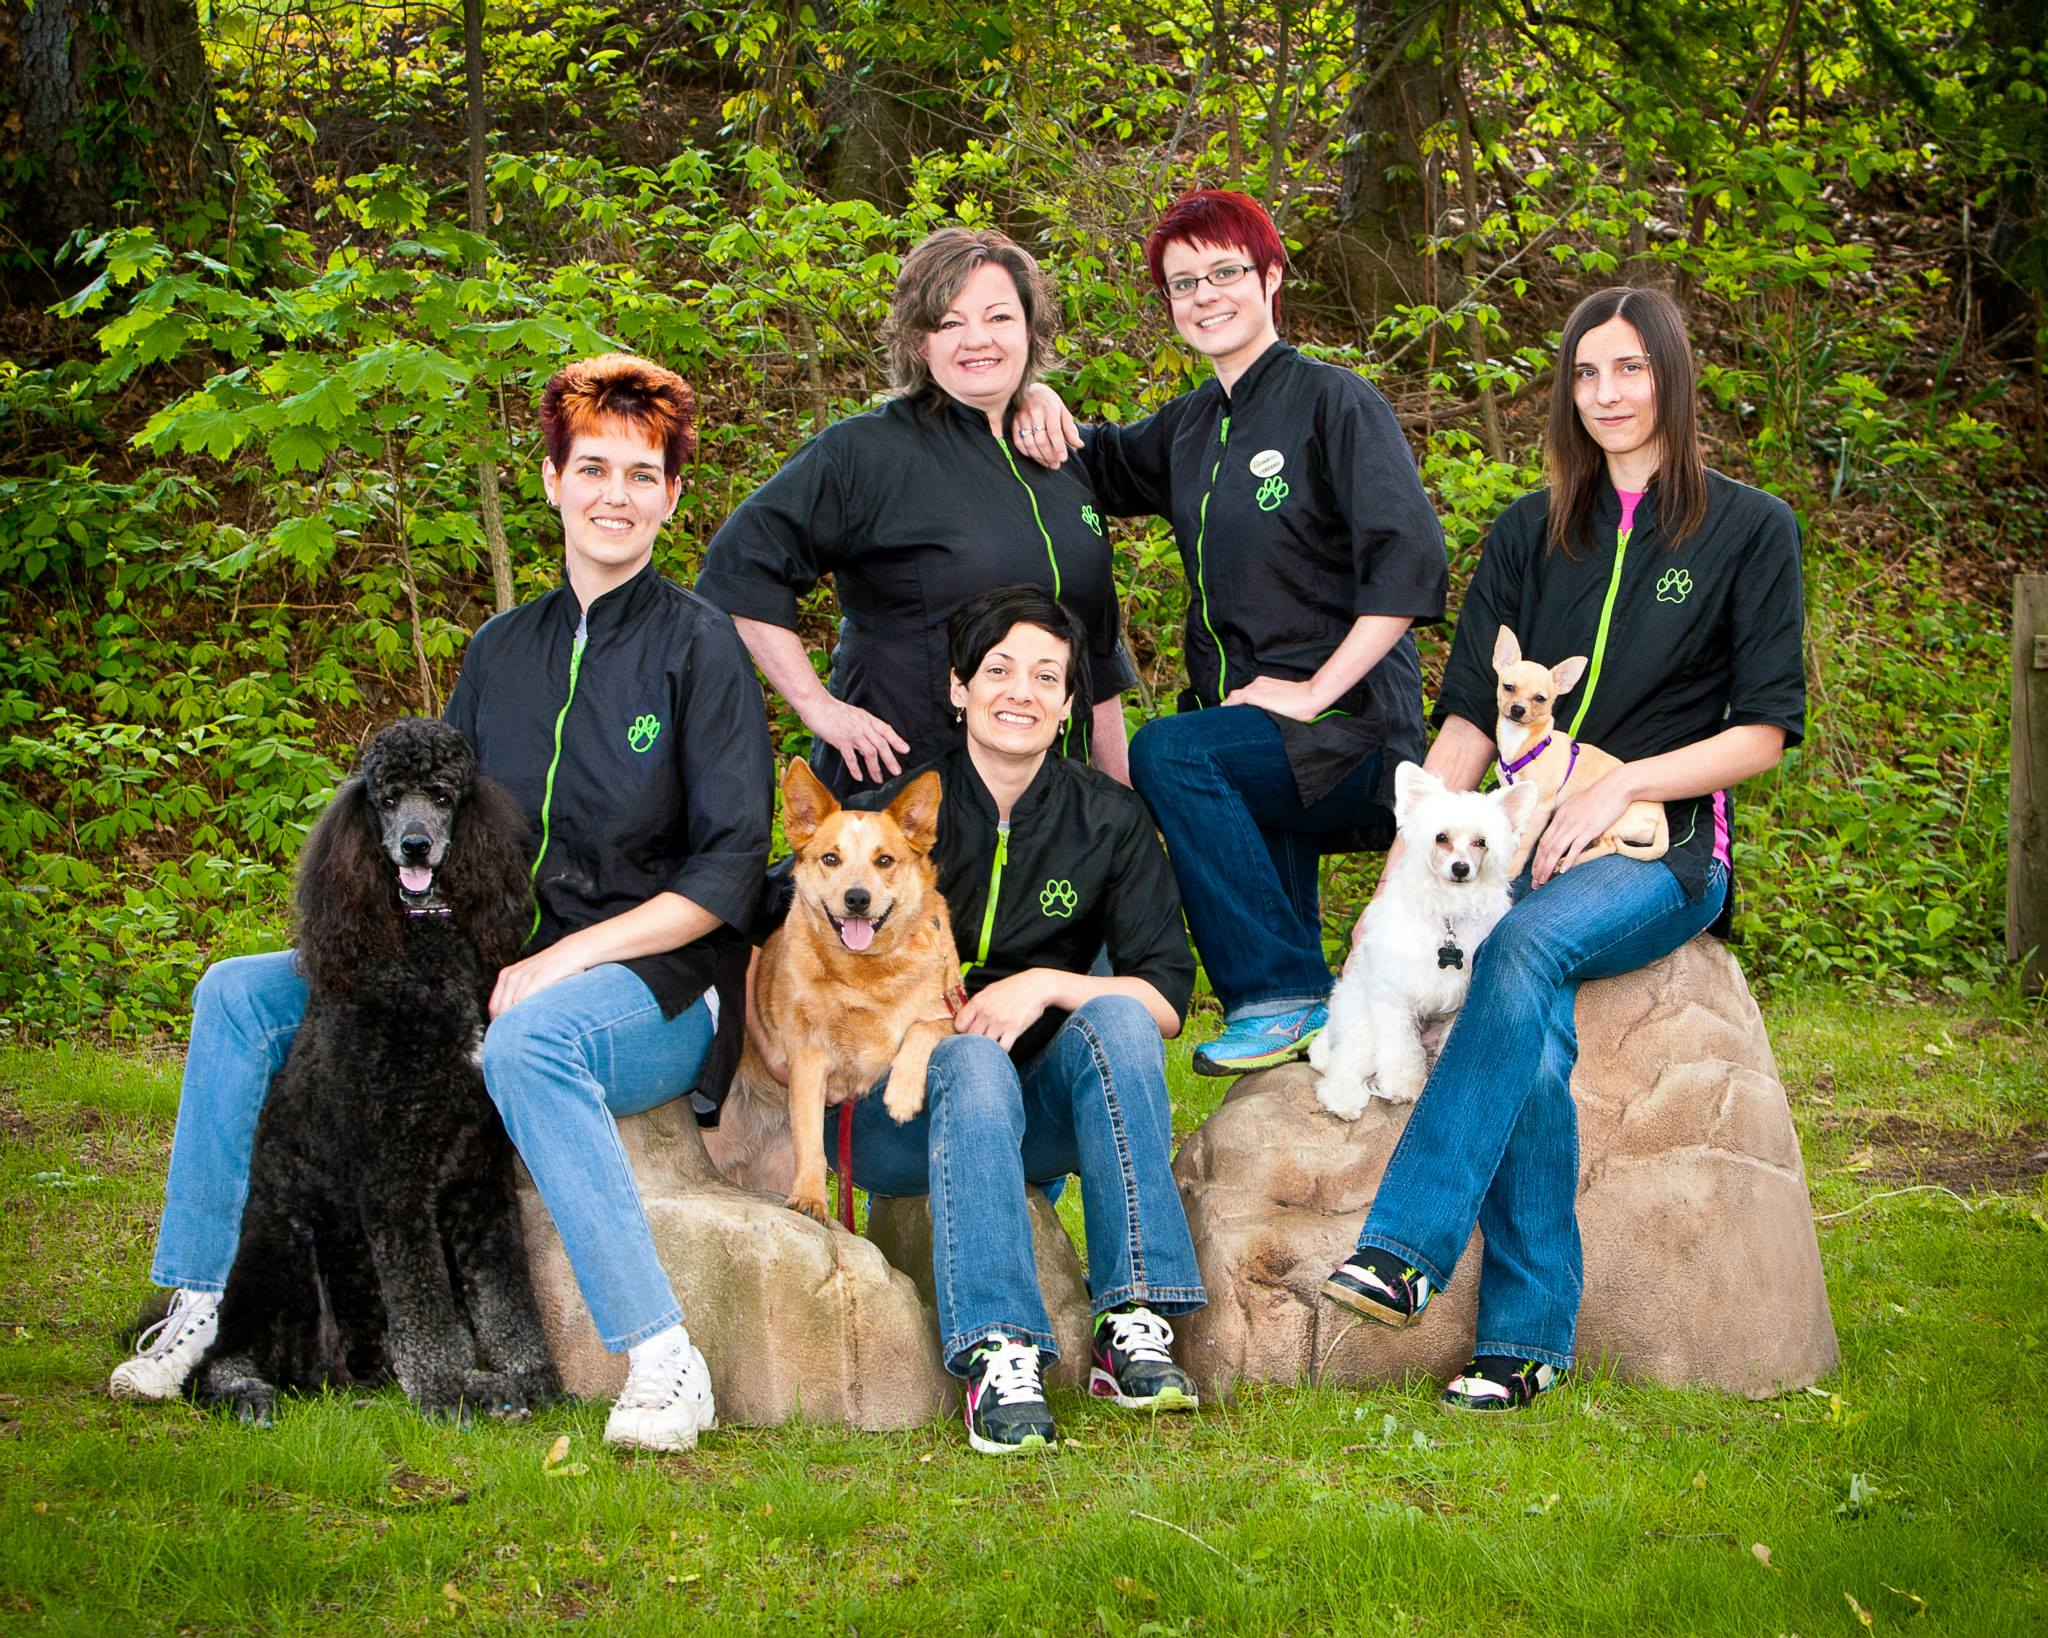 Pennsylvania's Top Rated Local® Pet Groomers Award Winner: PawFect Grooming